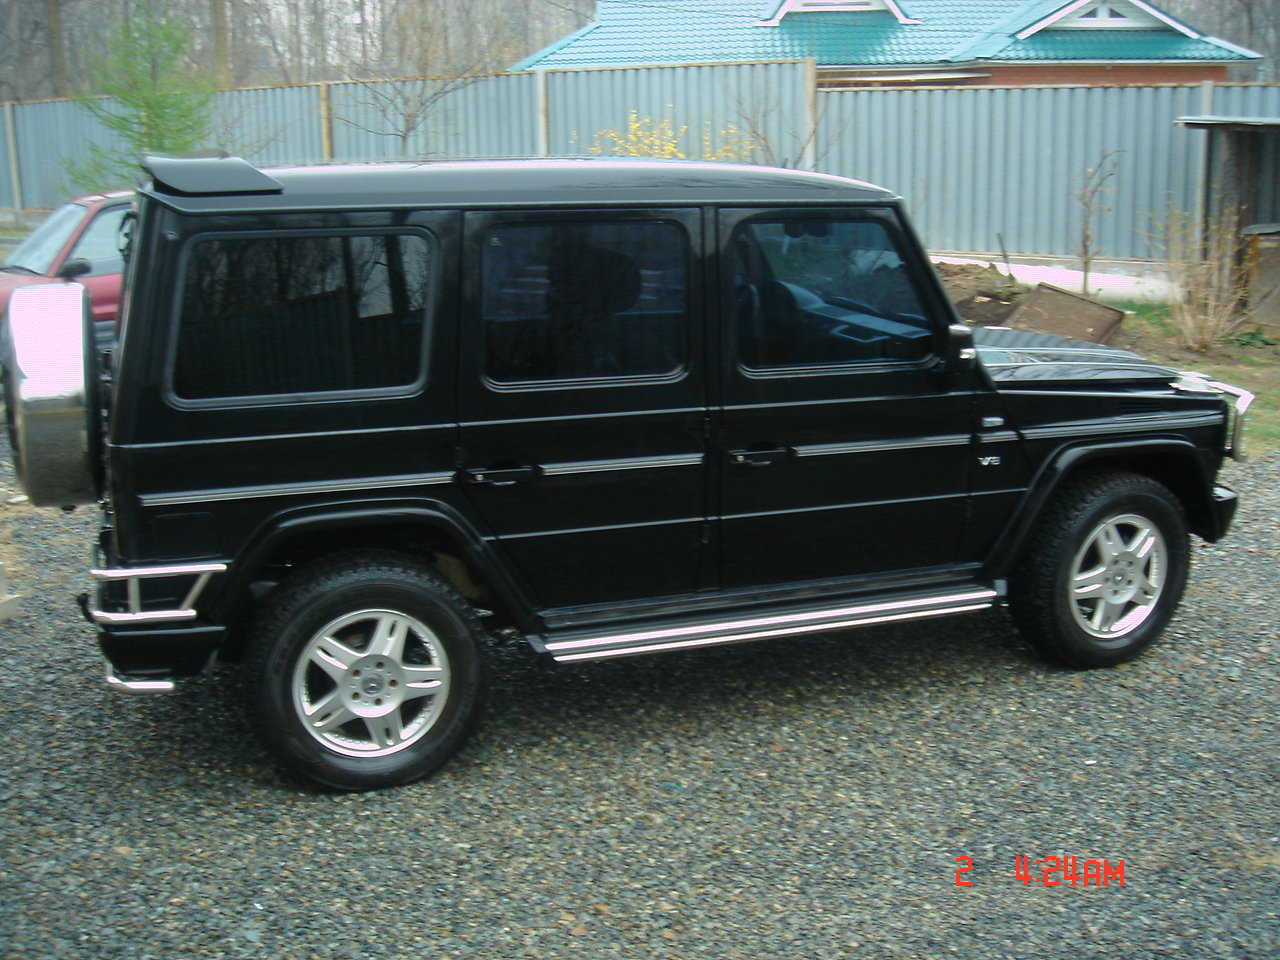 2002 mercedes benz g class photos 5 0 gasoline automatic for sale. Black Bedroom Furniture Sets. Home Design Ideas